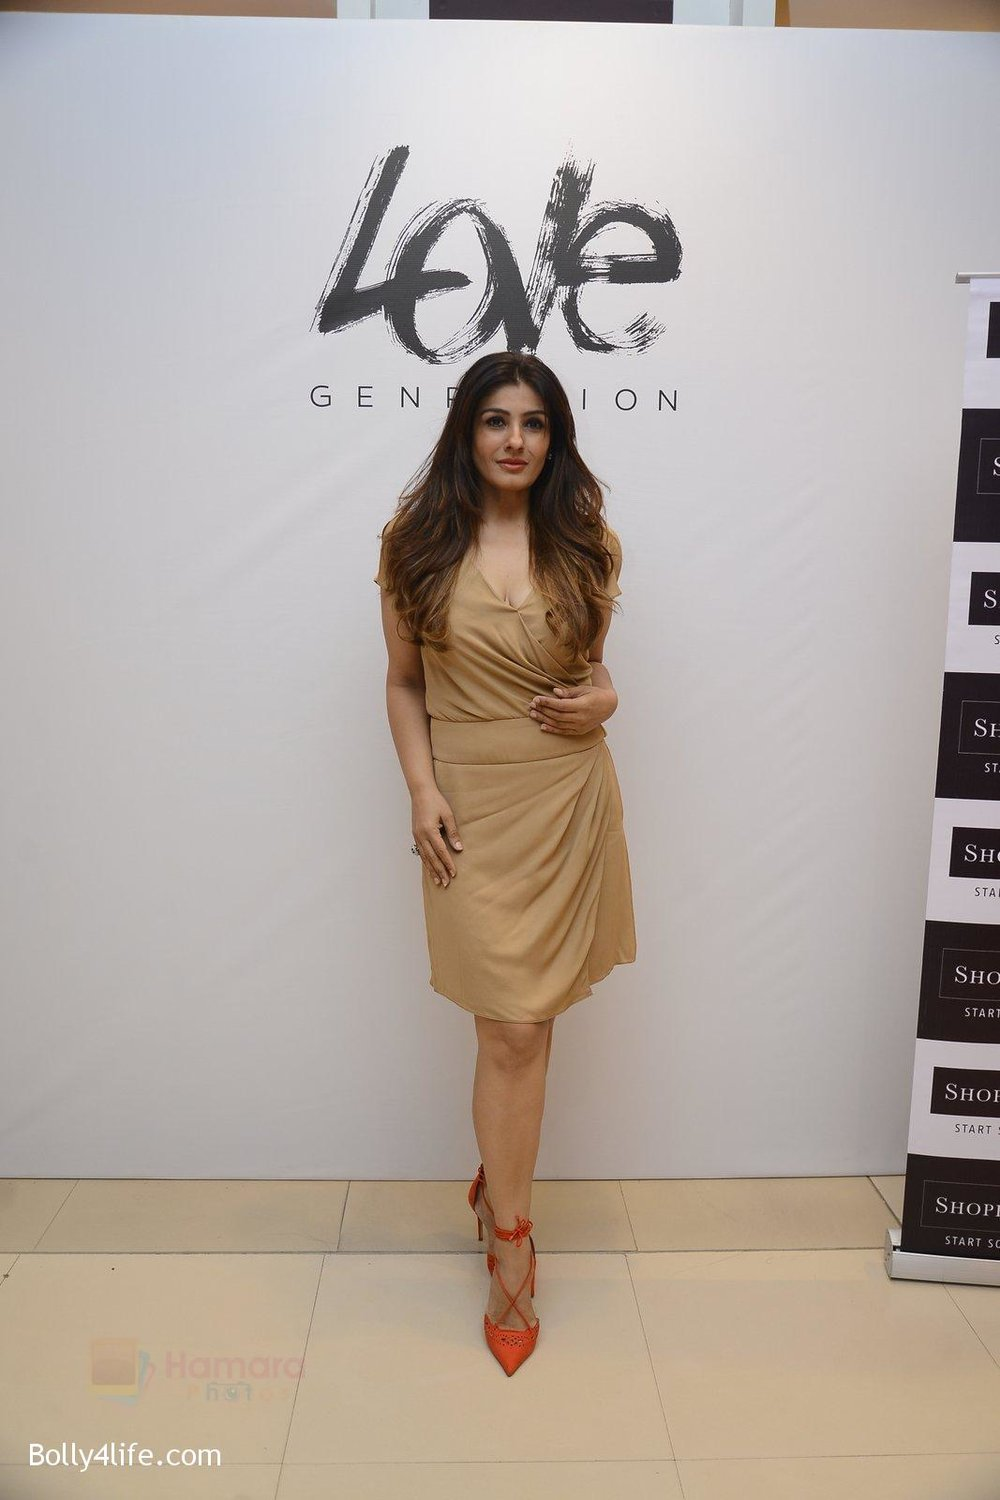 Raveena-Tandon-at-Love-Generation-launch-at-Shoppers-Stop-on-7th-Oct-2016-242.jpg